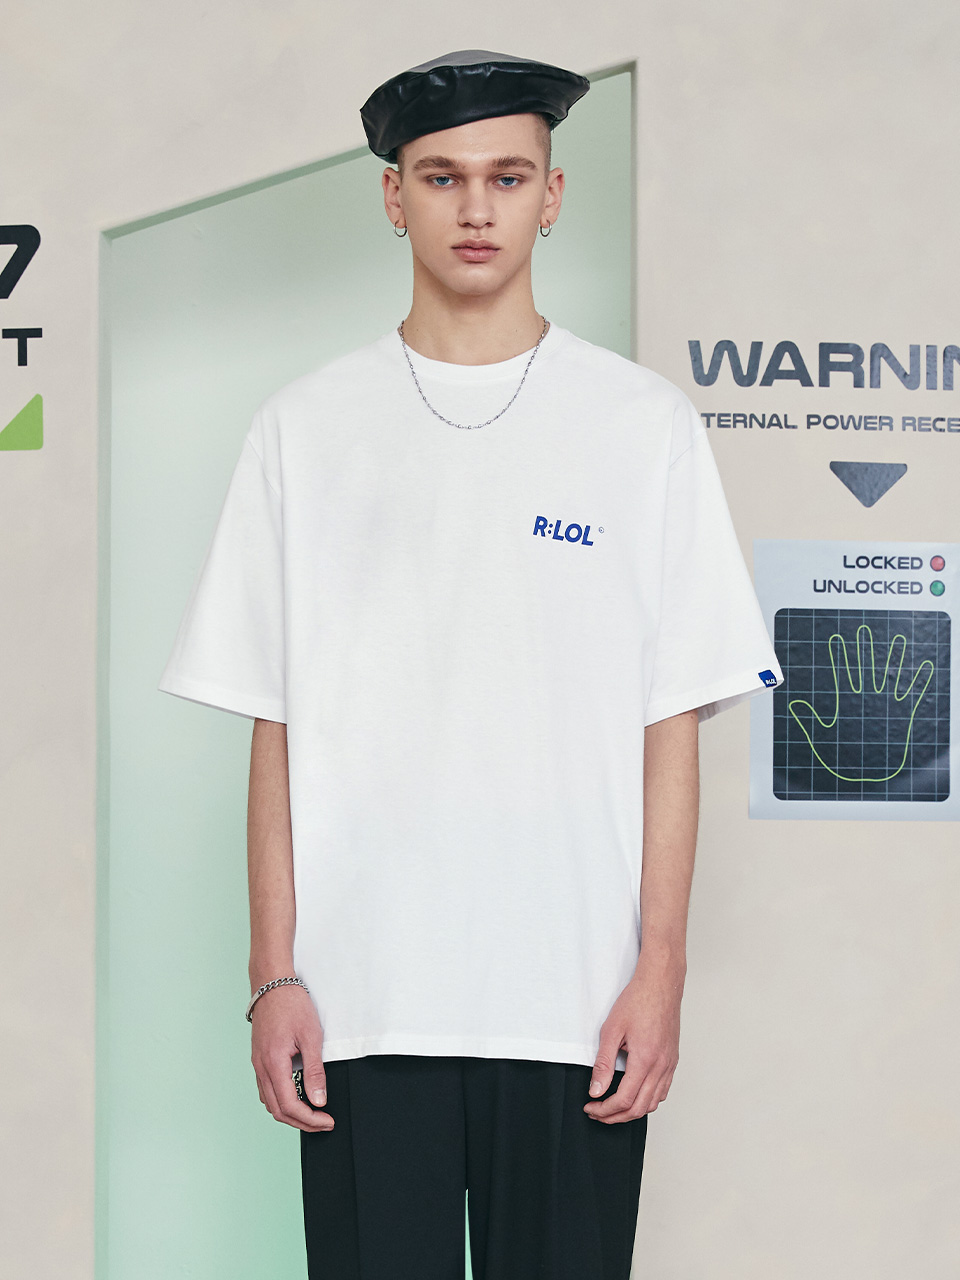 (TS-21301) R:LOL BASIC LOGO T-SHIRT WHITE